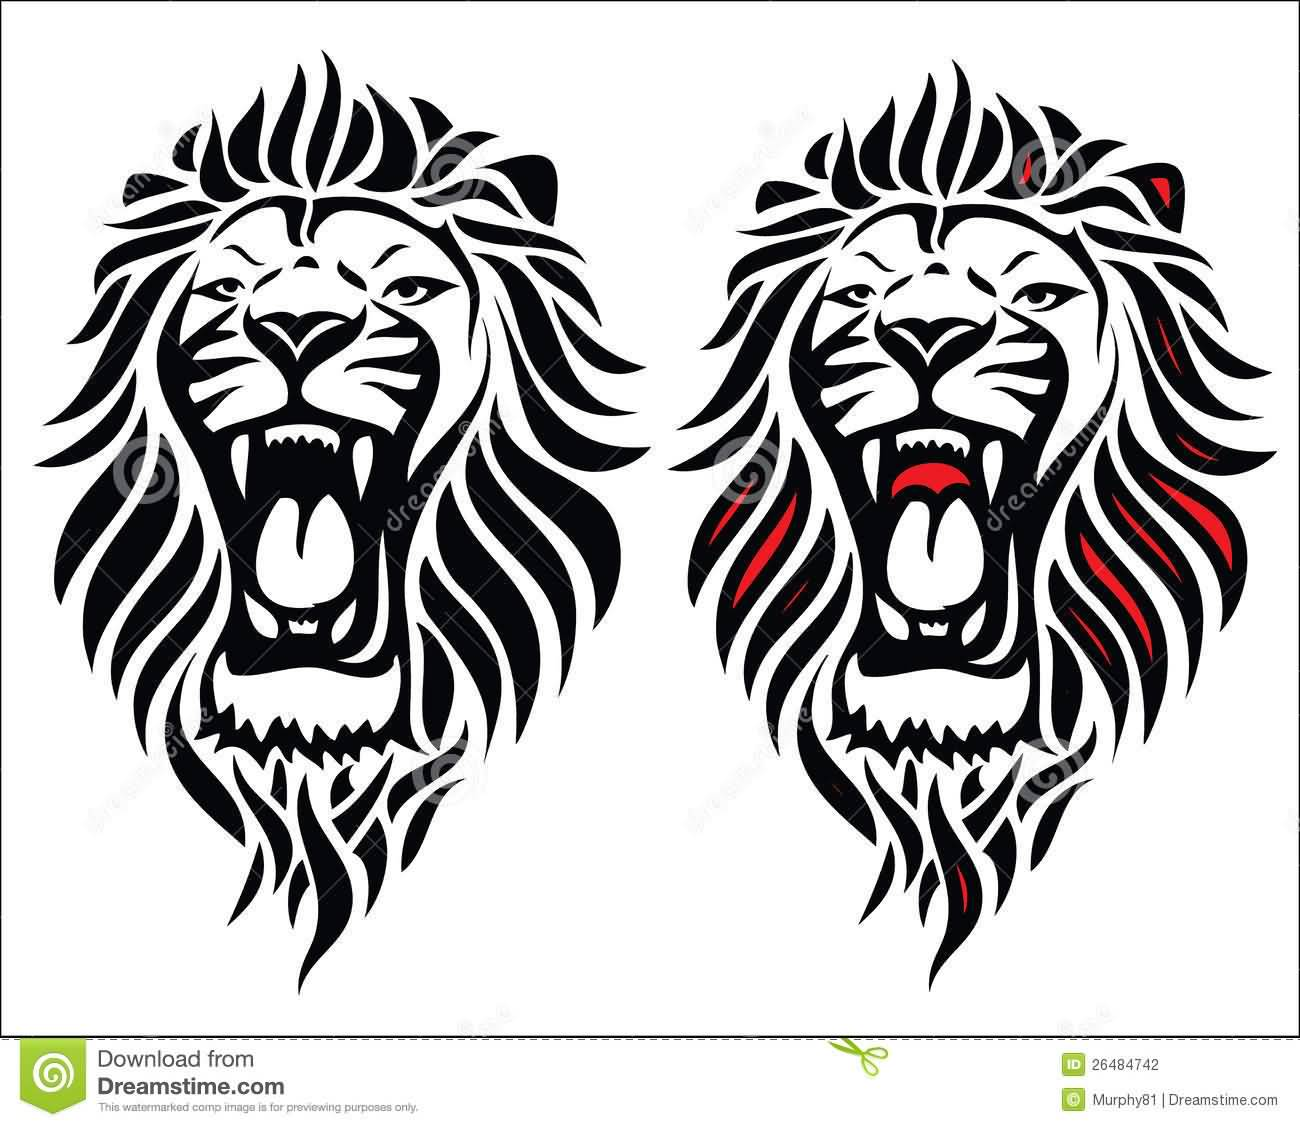 018d2285f Angry Red And Black Tribal Lion Head Tattoos Designs